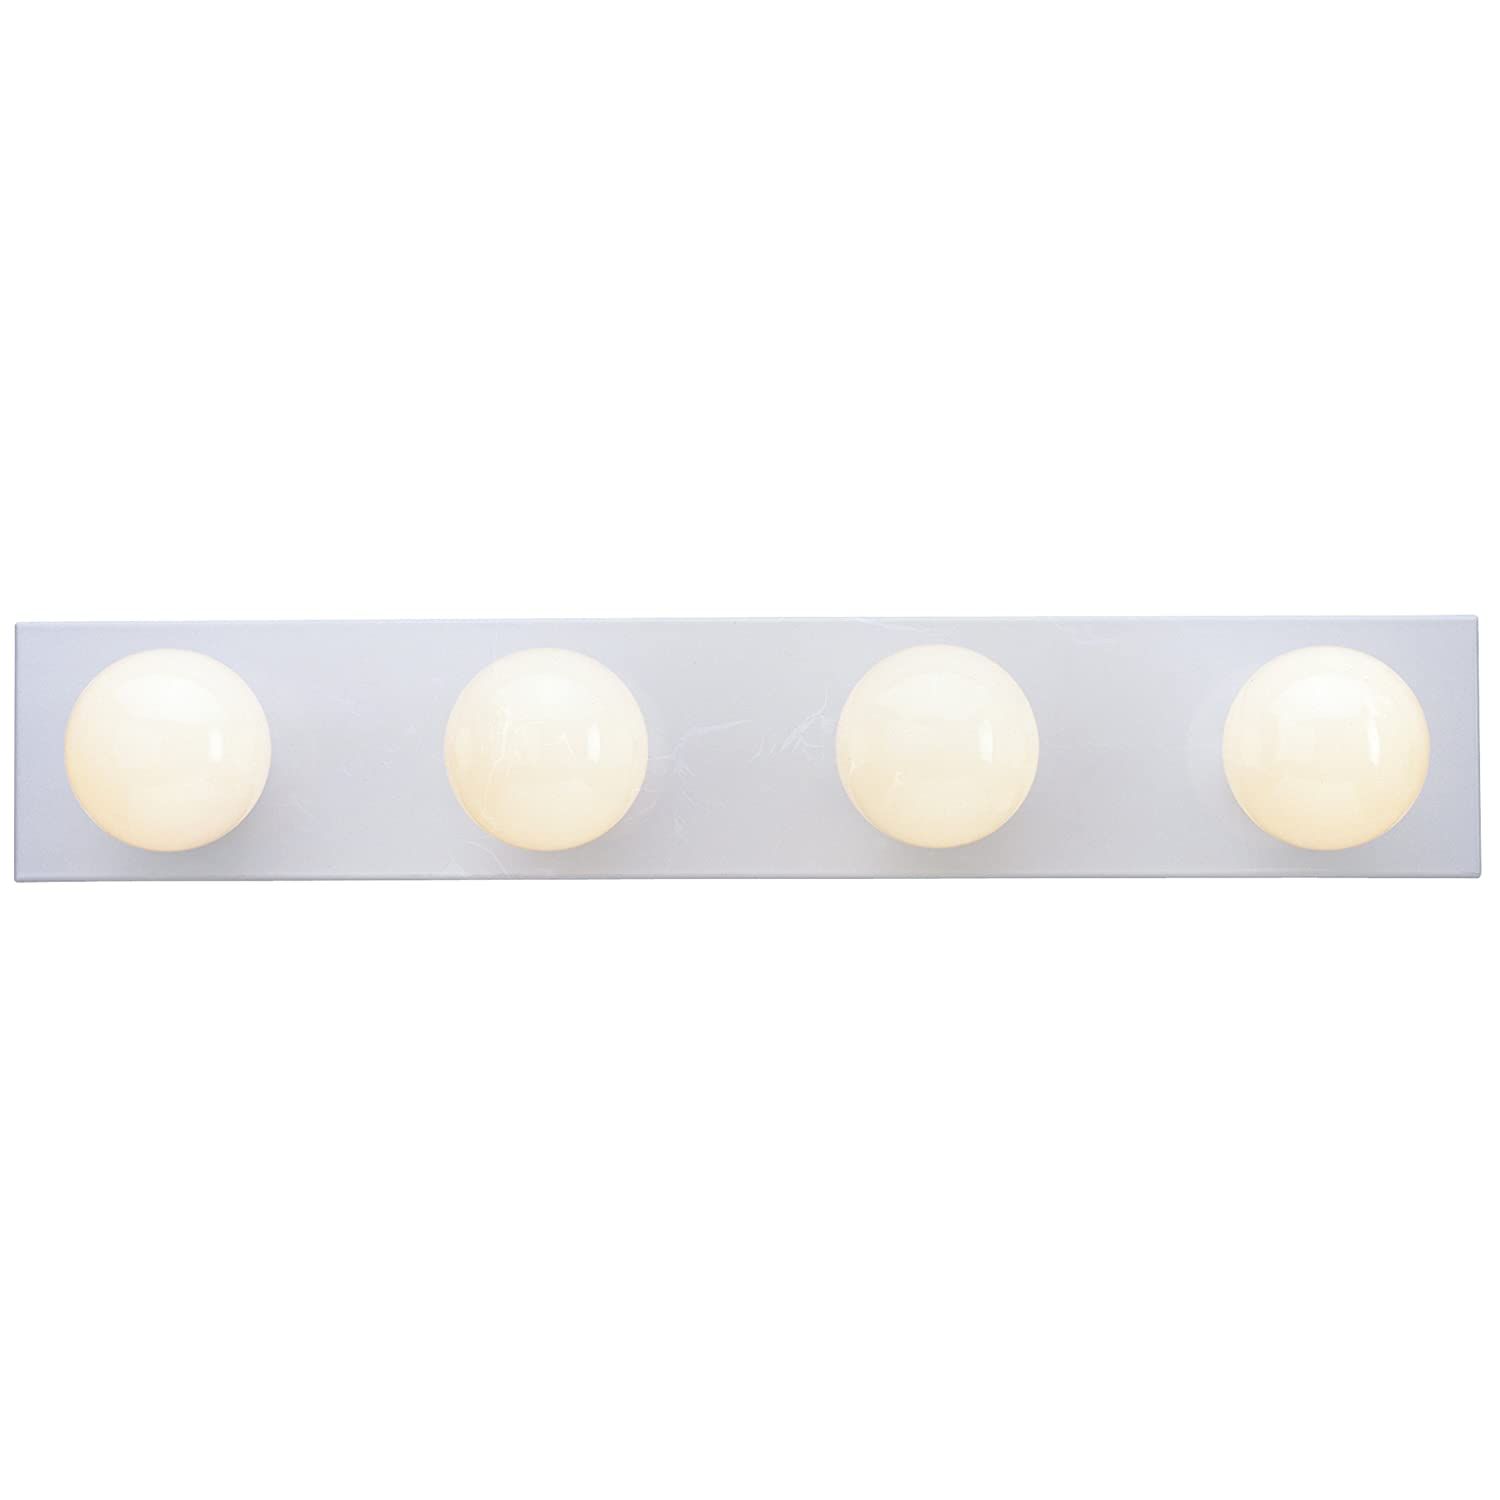 Westinghouse 6659500 4 light interior bath bar white finish westinghouse 6659500 4 light interior bath bar white finish vanity lighting fixtures amazon aloadofball Choice Image